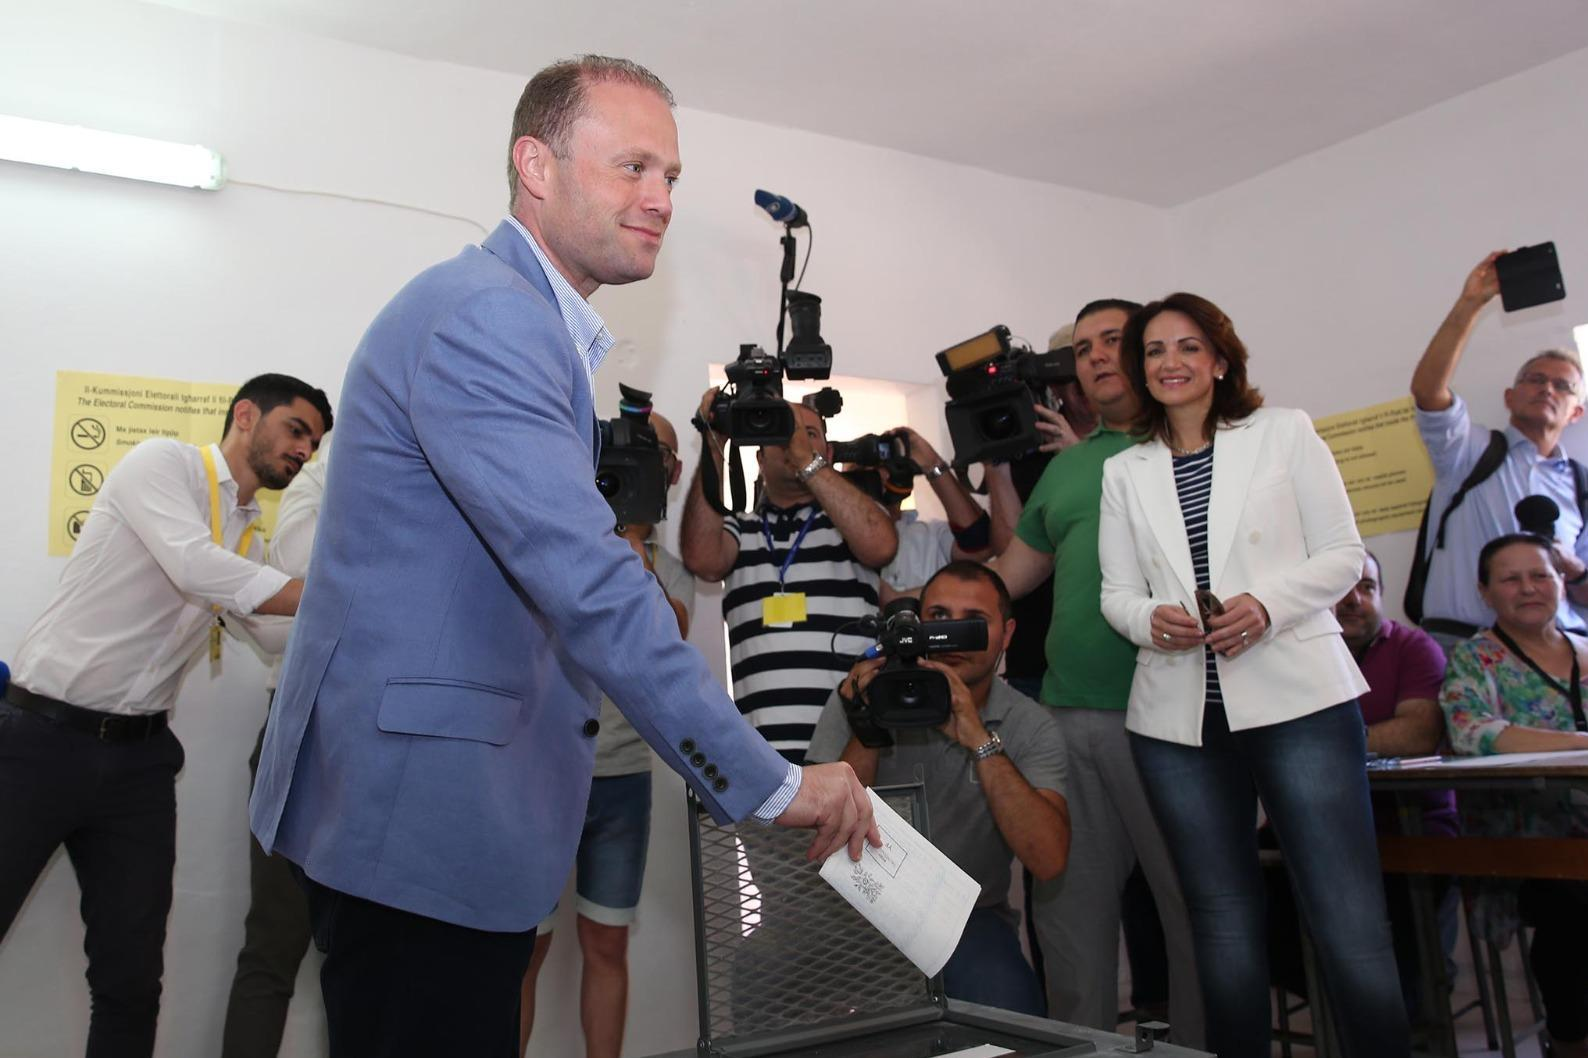 Joseph Muscat casts his vote in the 2017 election. Photo: DOI